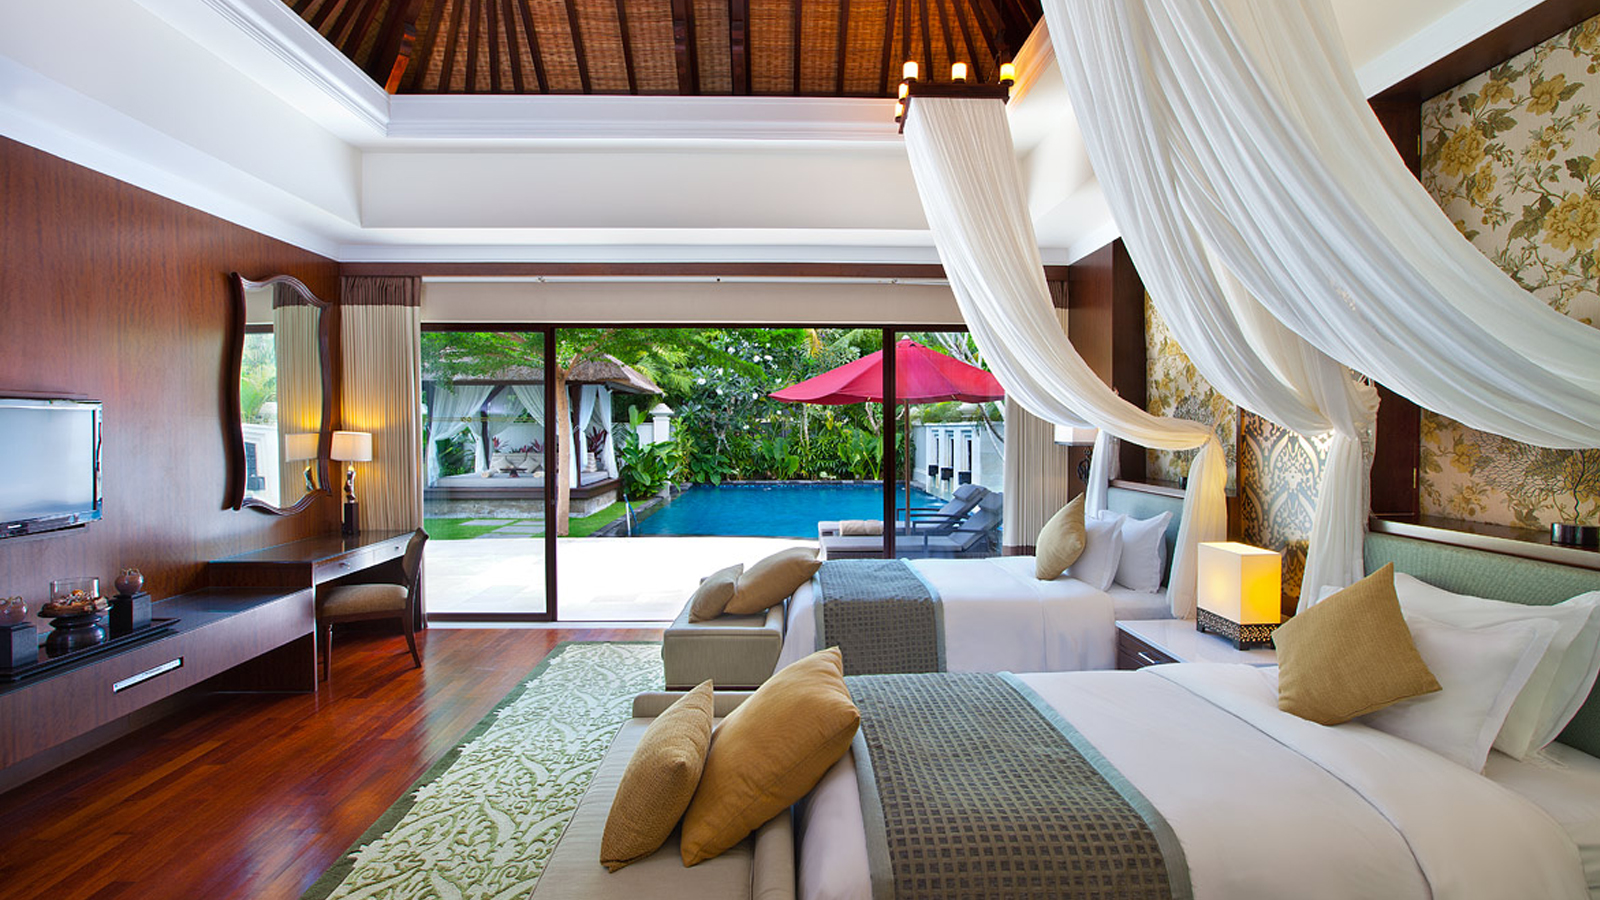 Luxury Resort Bali Rooms Suites At The Laguna Resort Spa Nusa Dua